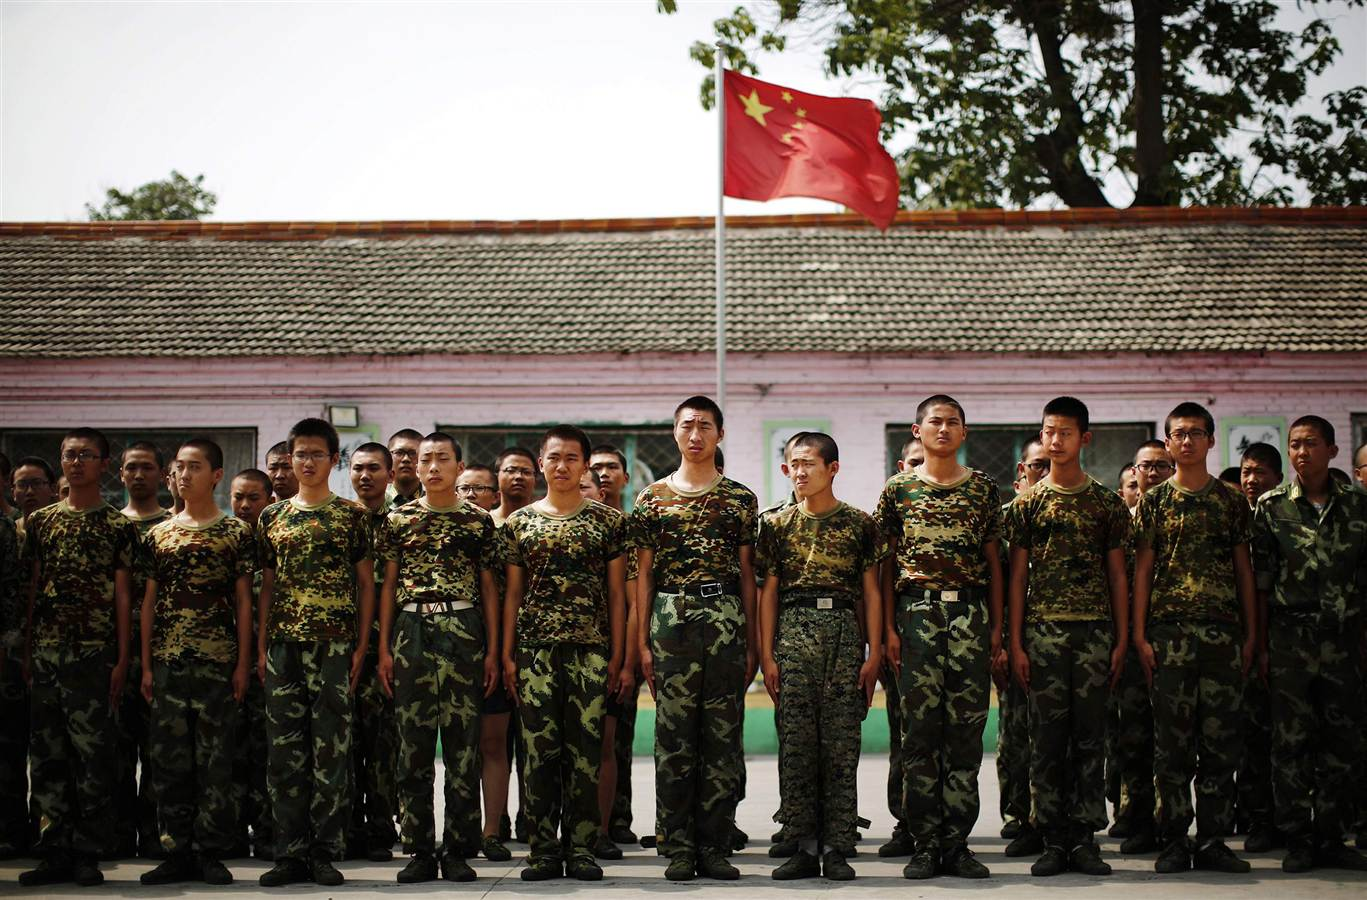 Students stand in front of the Chinese national flag as they prepare to take part in a military drill at the Qide Education Center in Beijing on June 11